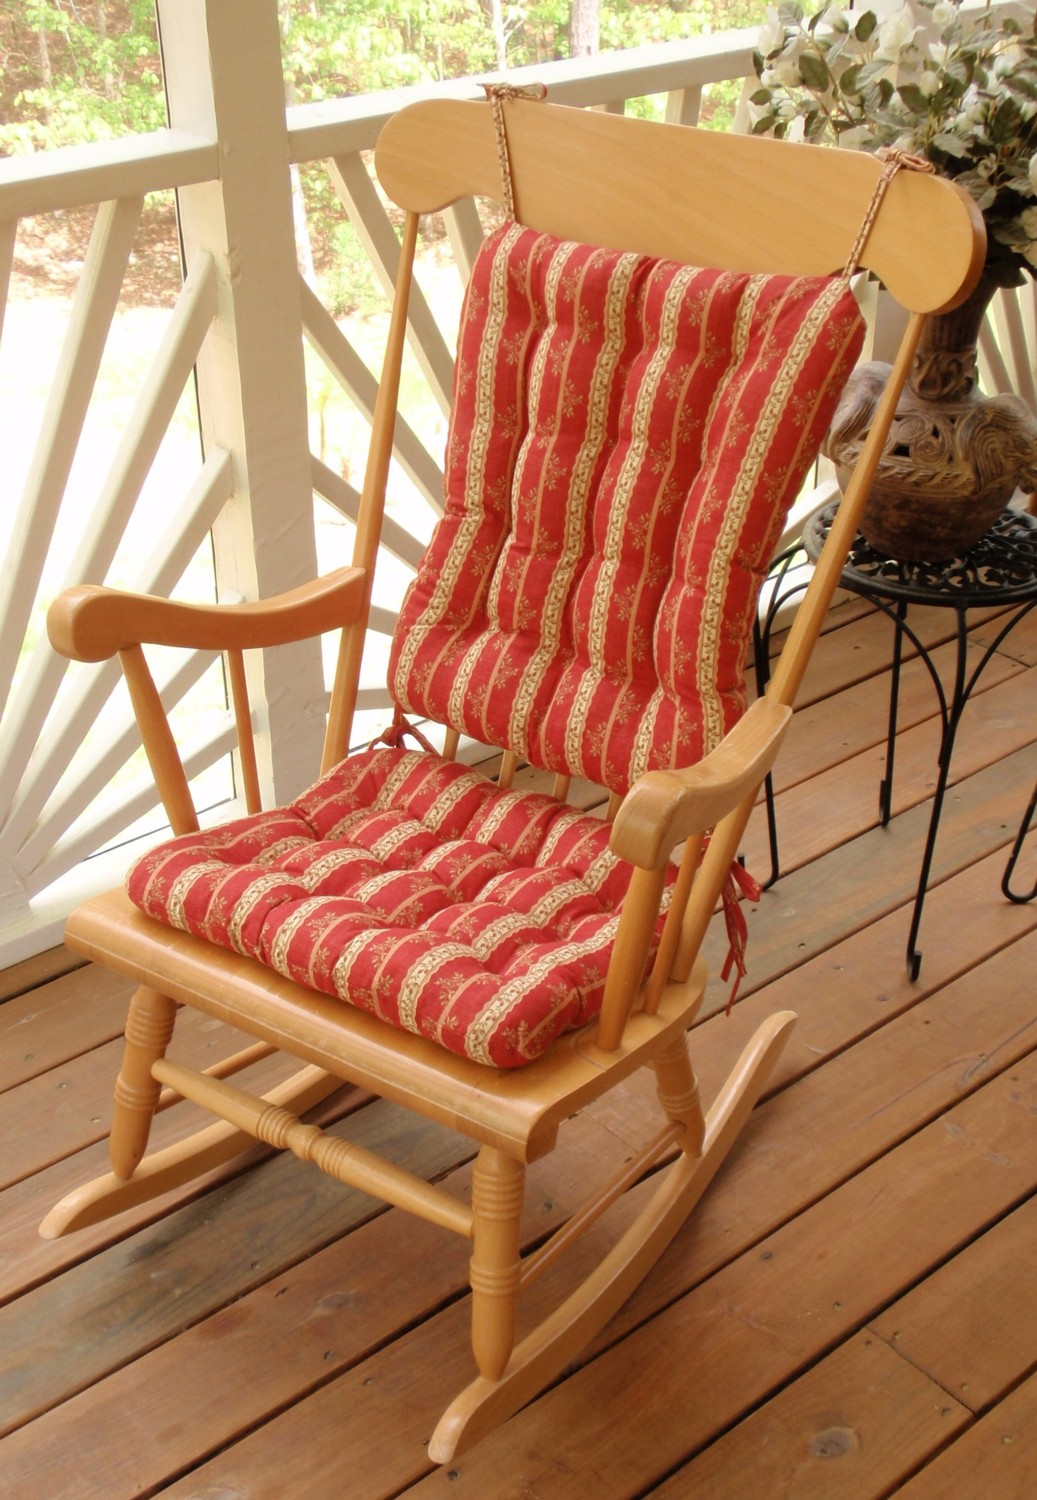 Perfect Tealane Stripe Rocking Chair Cushions (3 Colors)